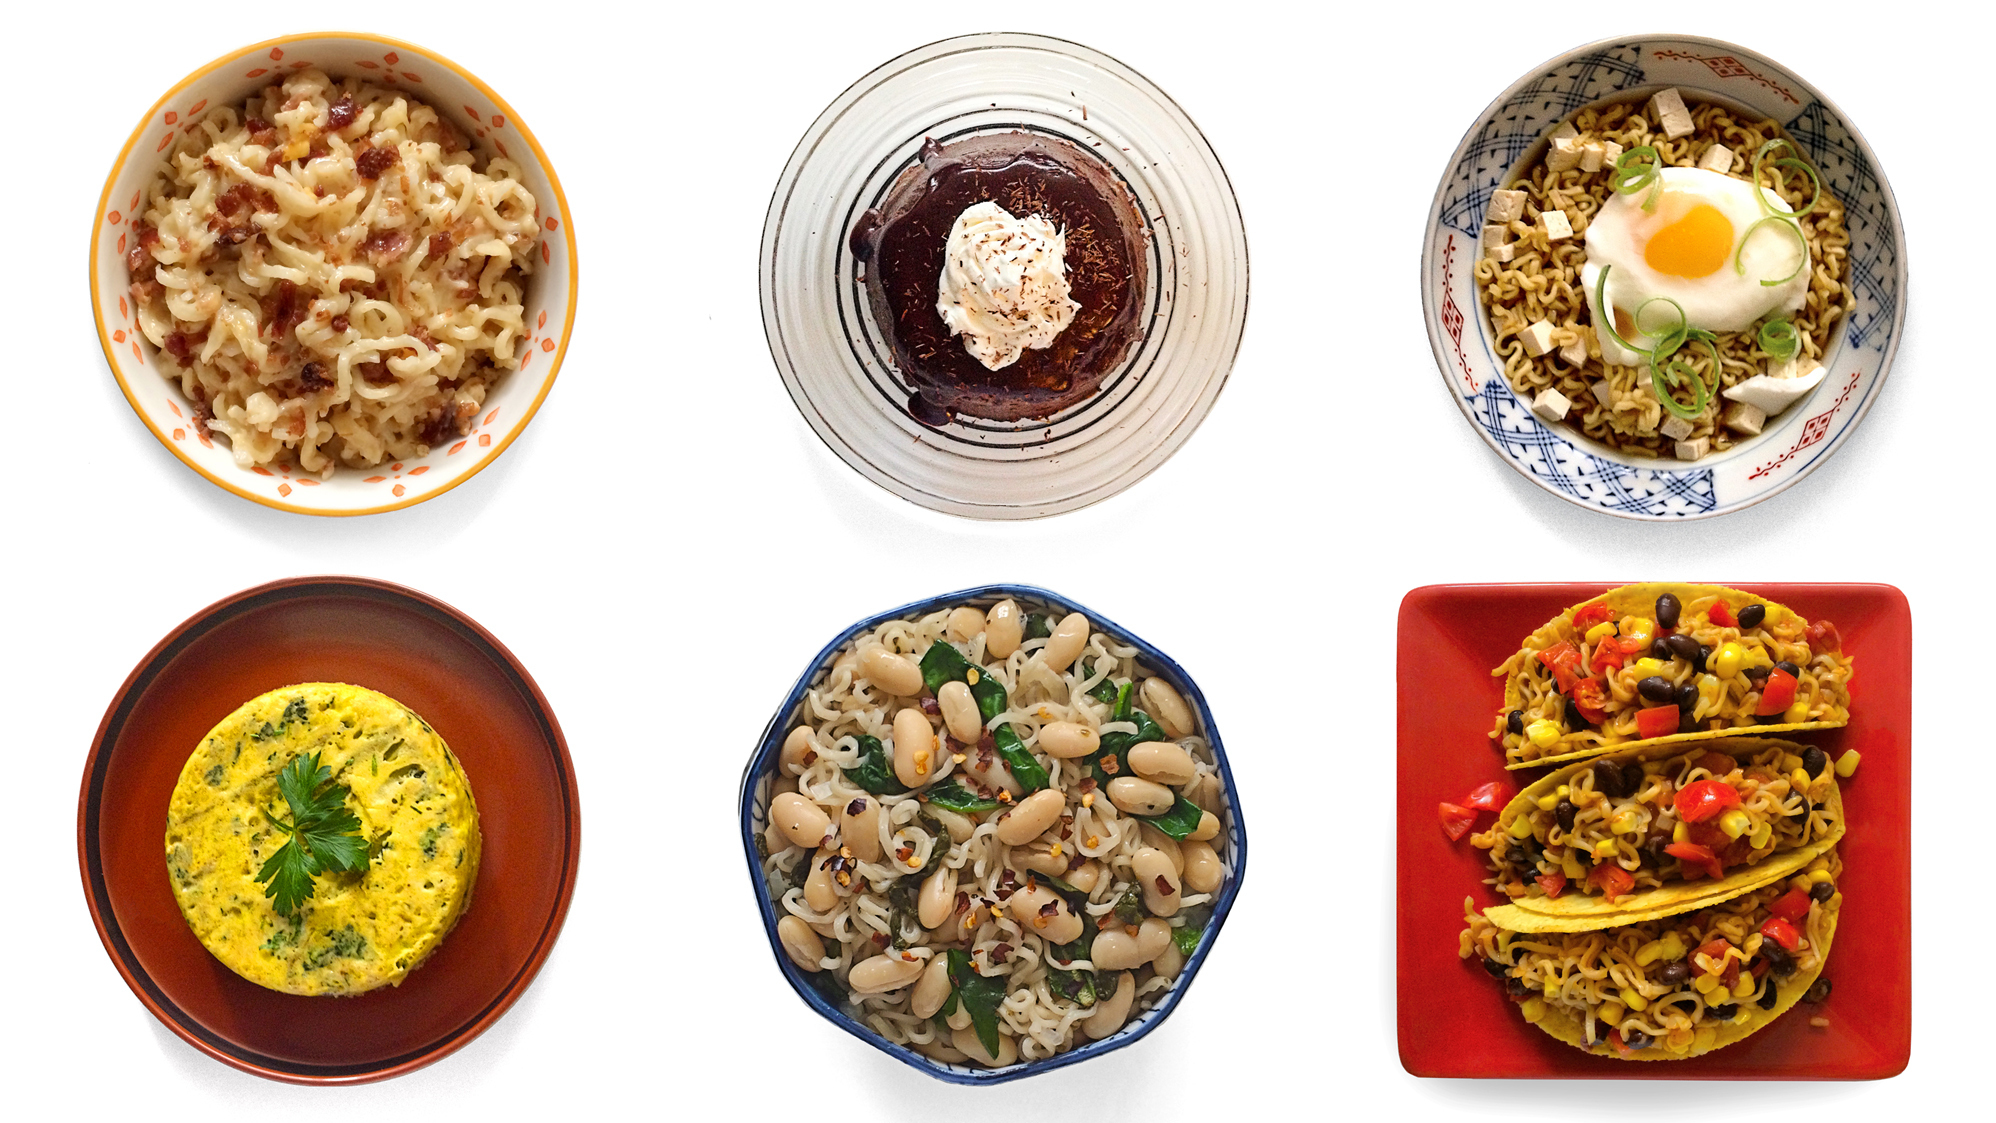 (Top left, clockwise) Macmen N' Cheese; chocolate ramen; udon and egg. (Bottom row) Ramen fritatta; cannellini beans and spinach; and southwest taco from the book Rah! Rah! Ramen. Photo: Sara Childs/ Courtesy of Interactive Direct